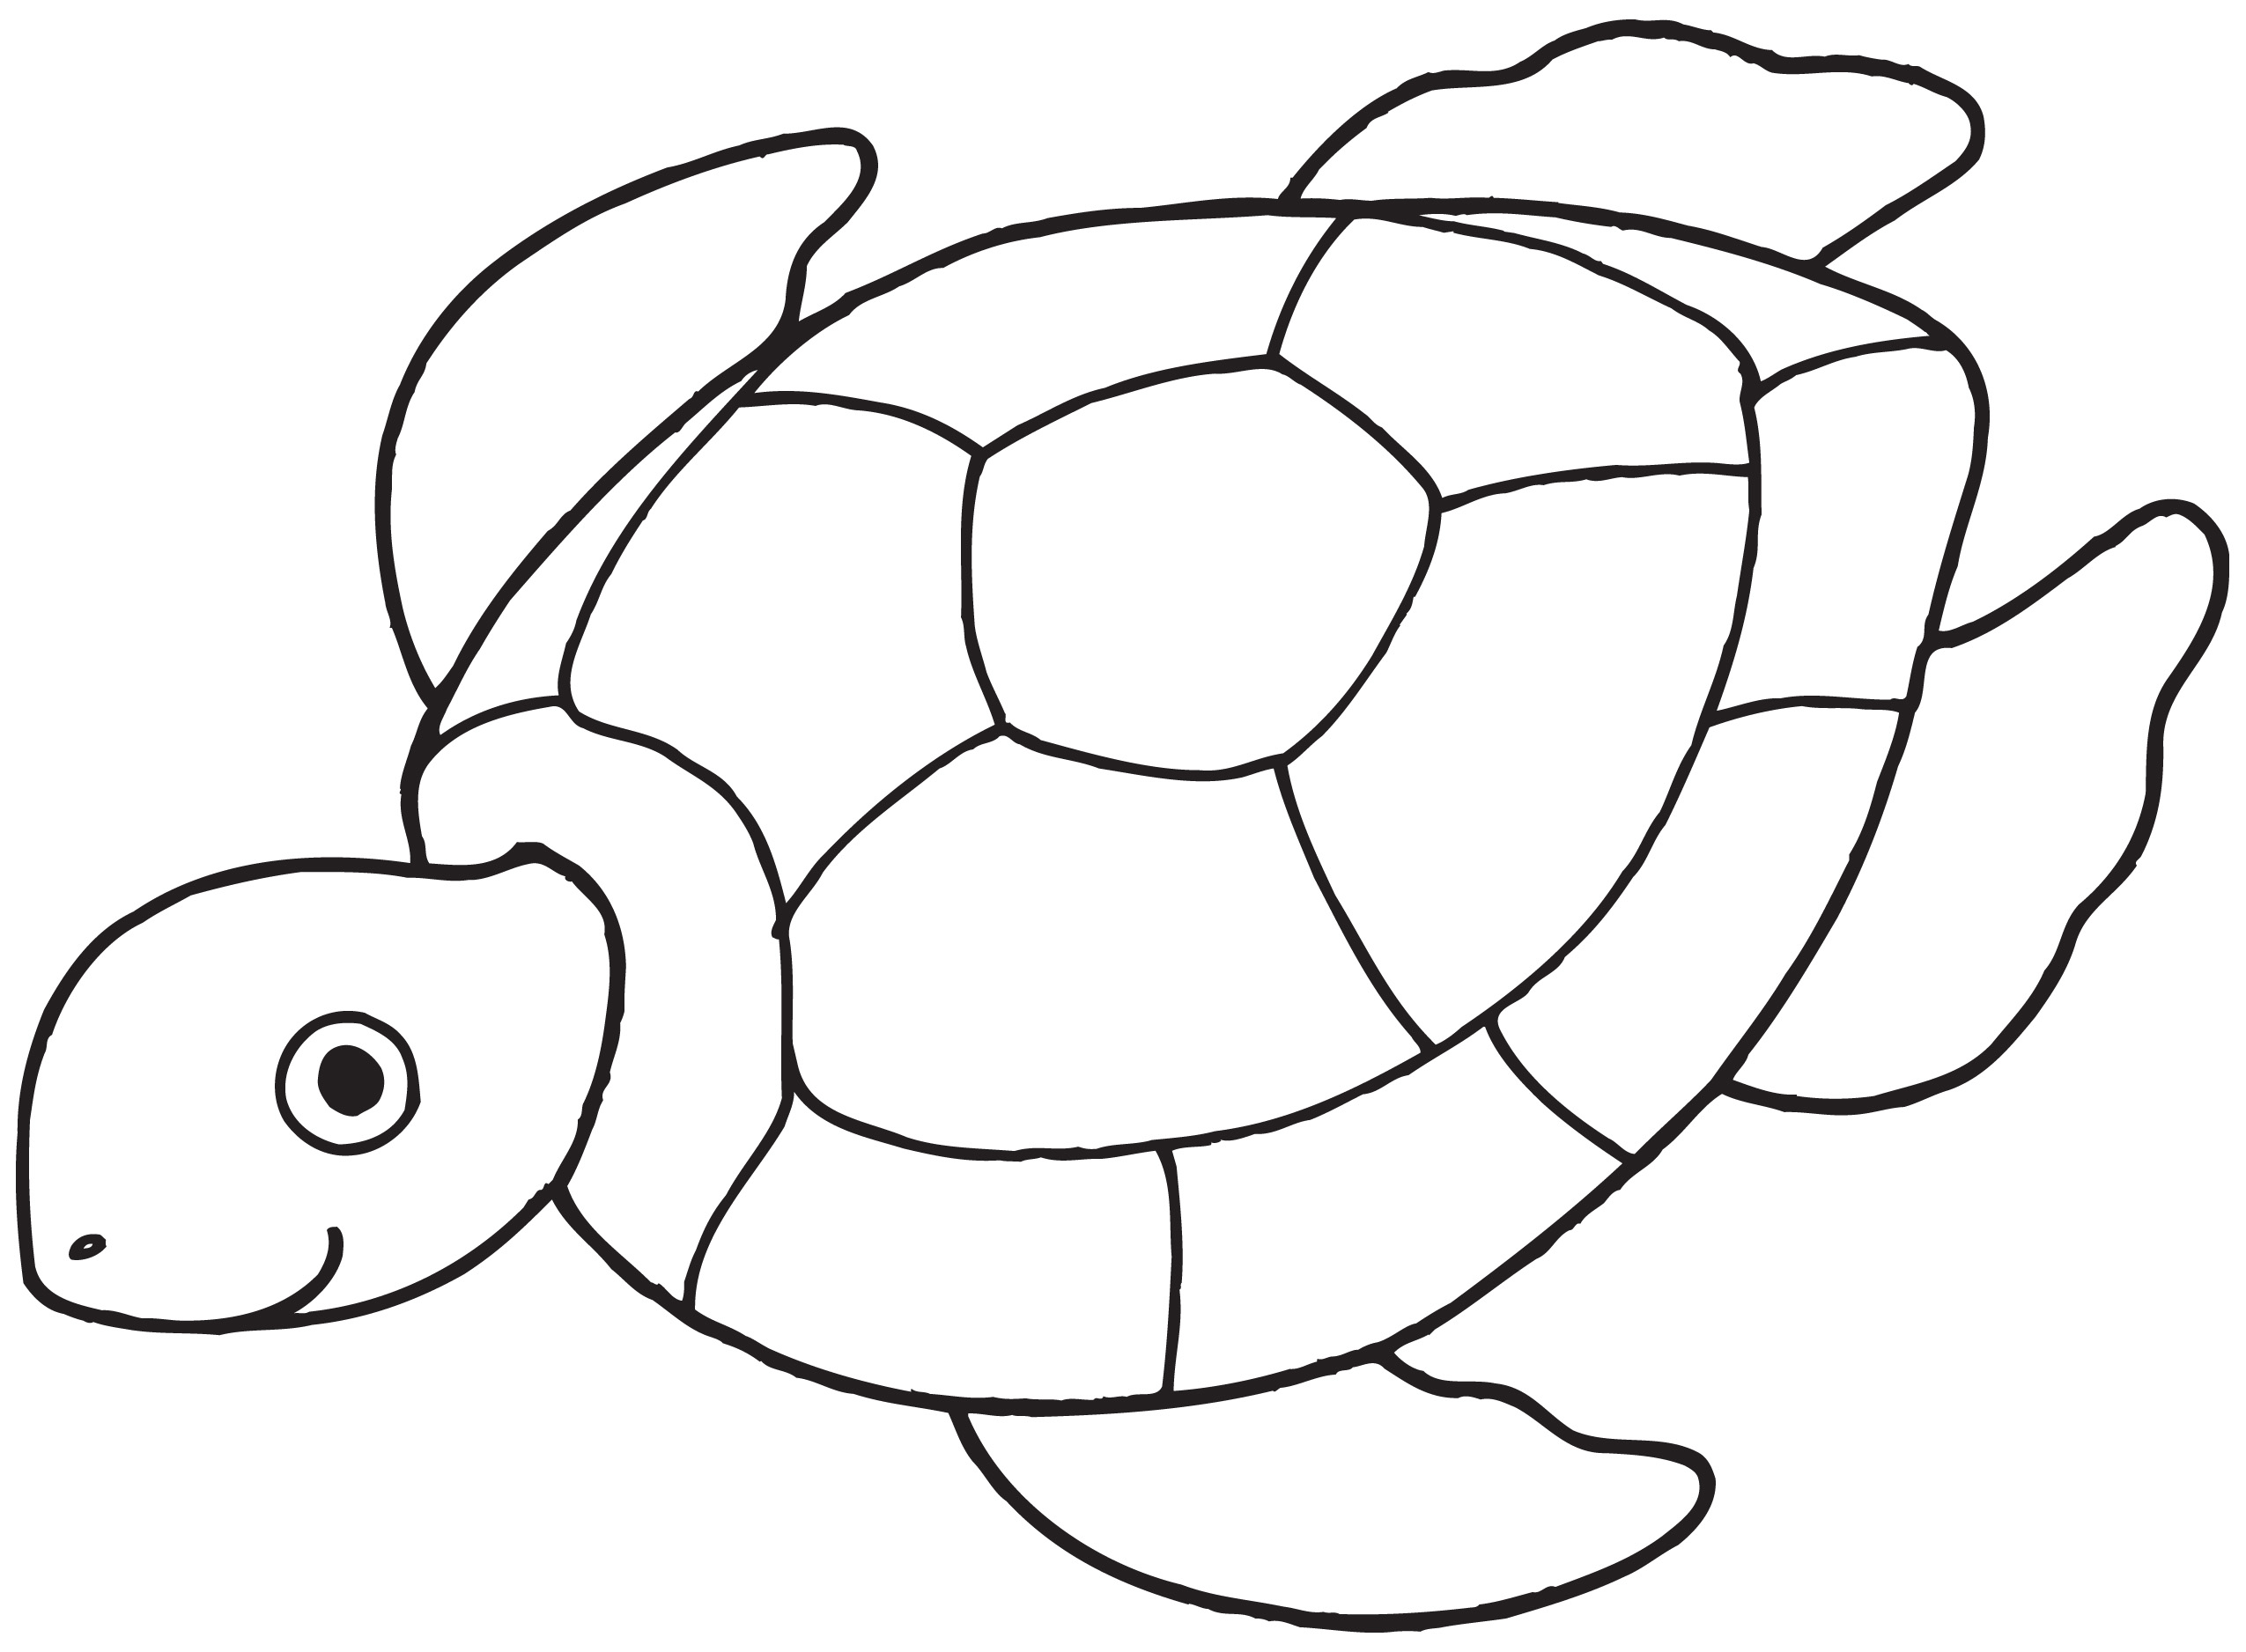 Sea Turtle Clipart Black And White   Clipart Panda   Free Clipart